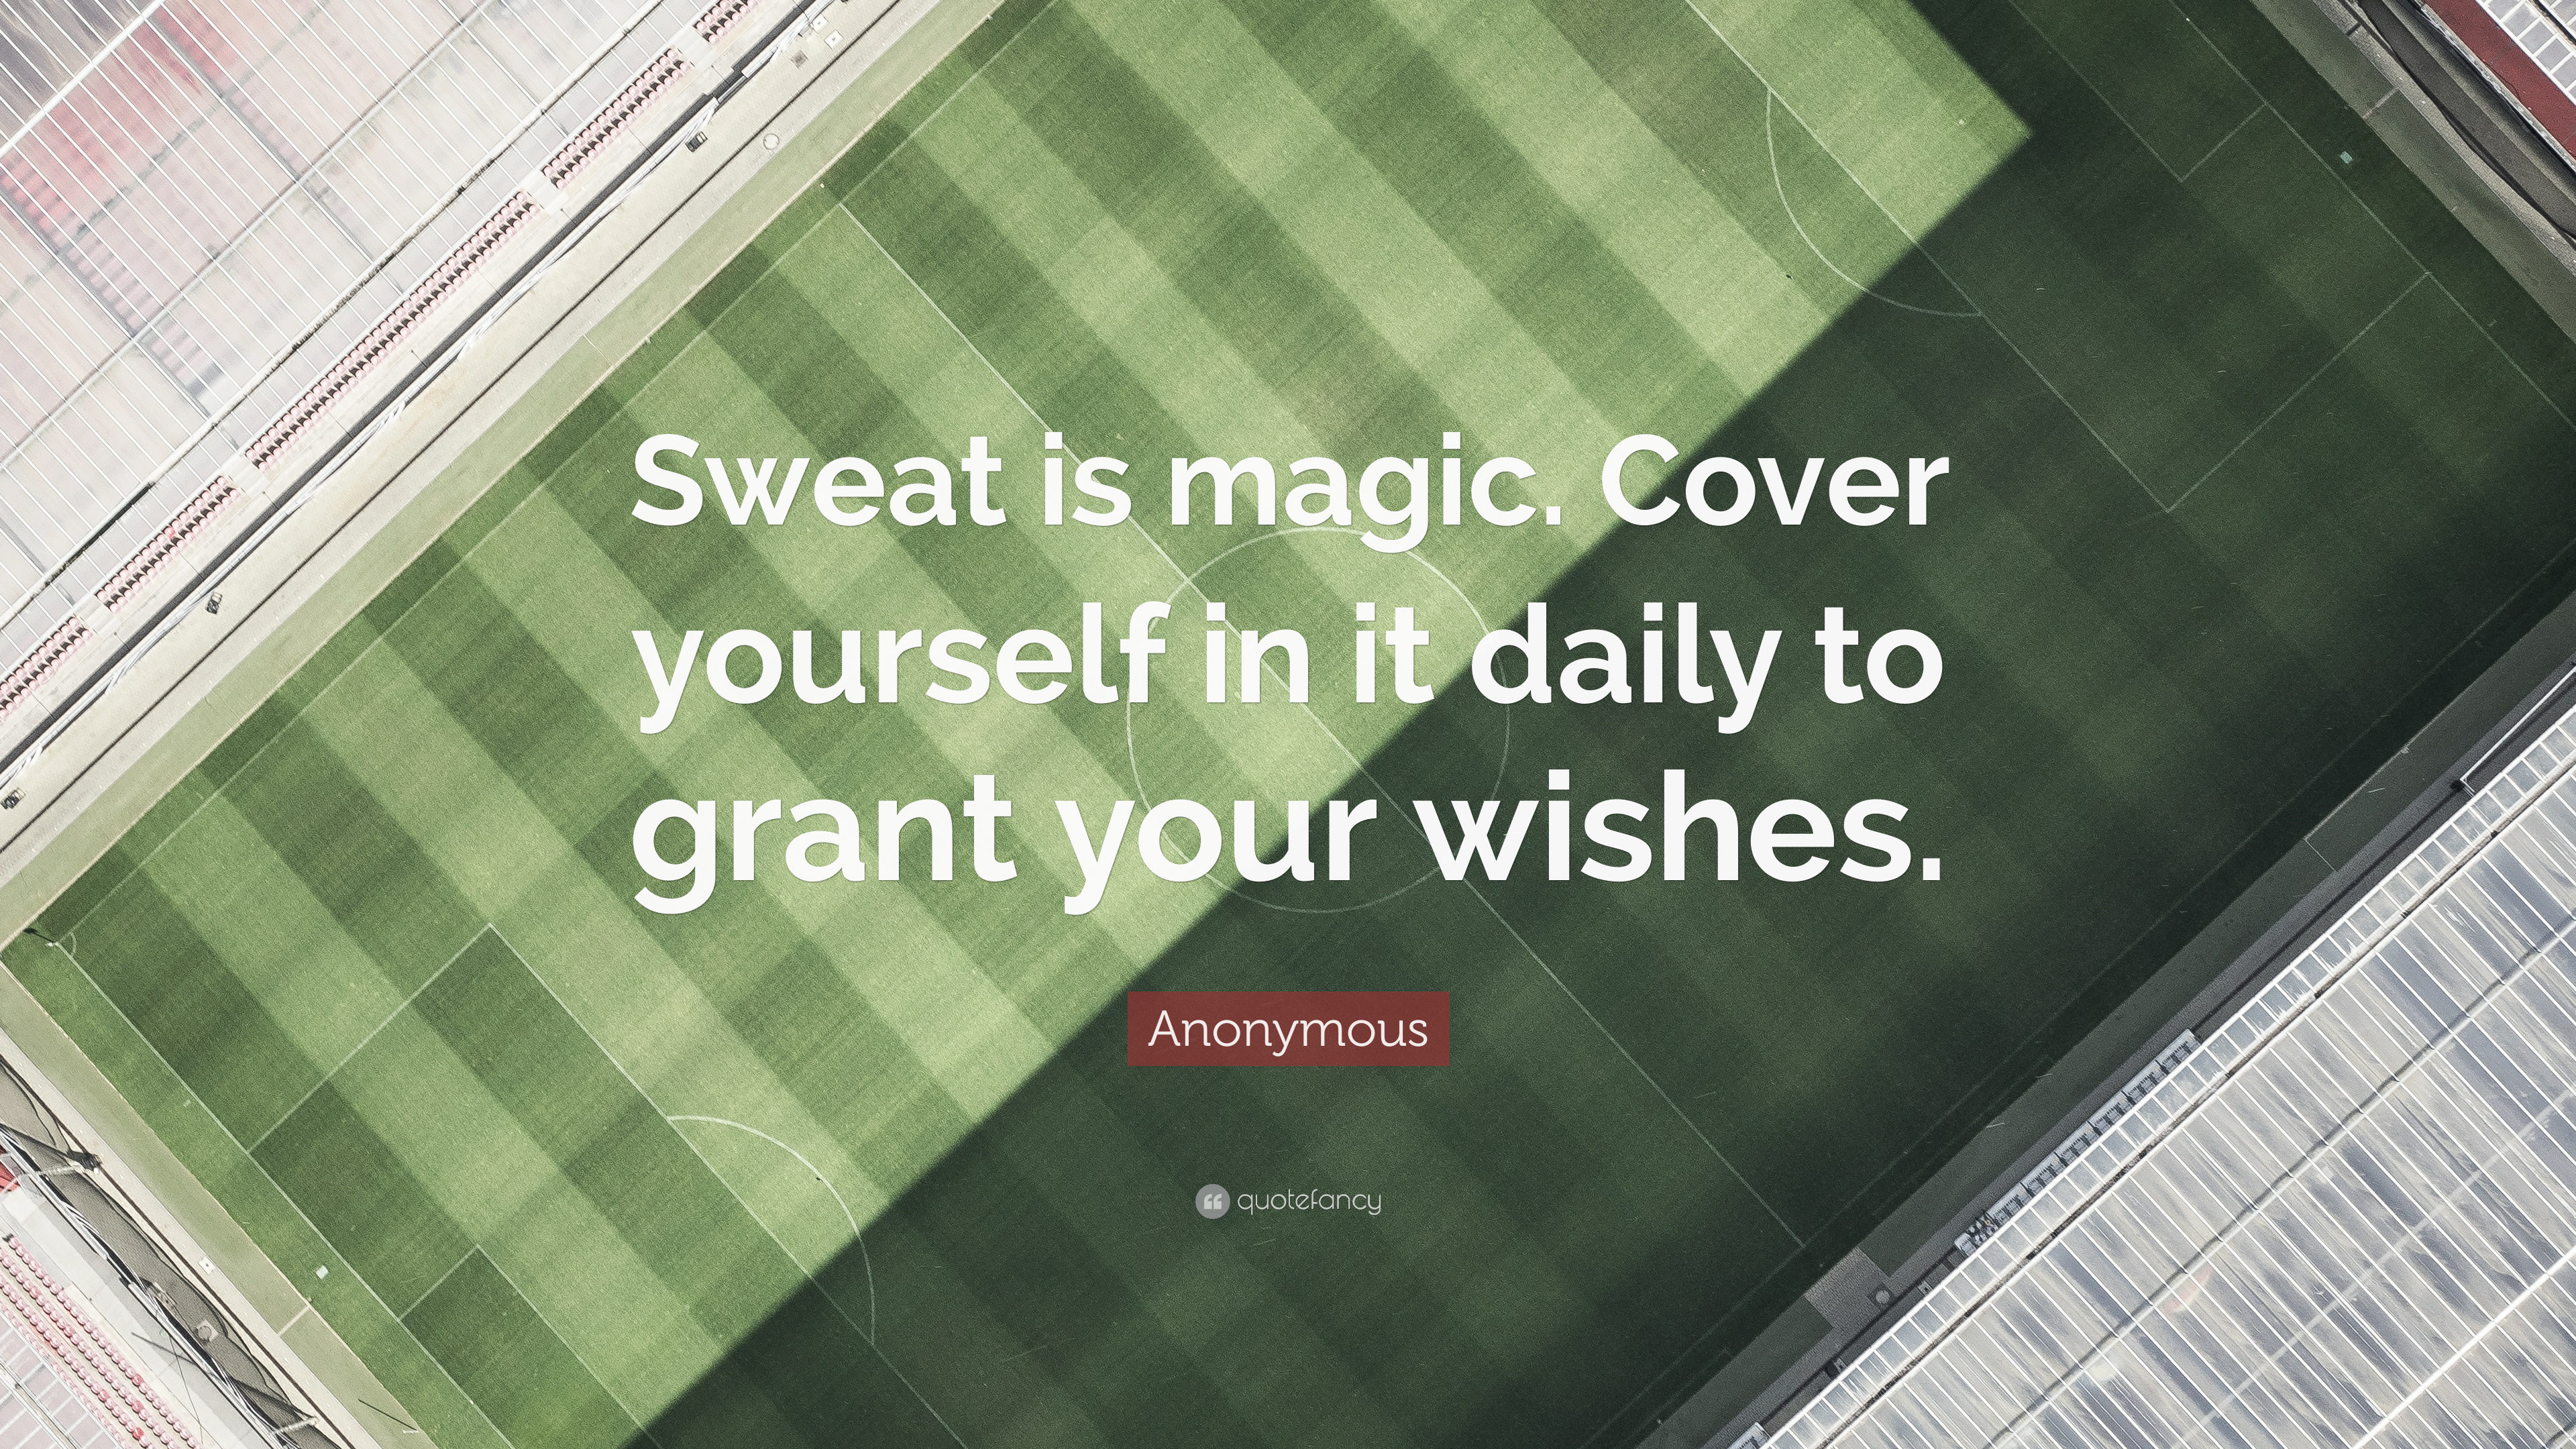 Magic Anonymous Quote sweat Is Magic Cover Yourself In It Daily To Grant Your Quotefancy Anonymous Quote sweat Is Magic Cover Yourself In It Daily To